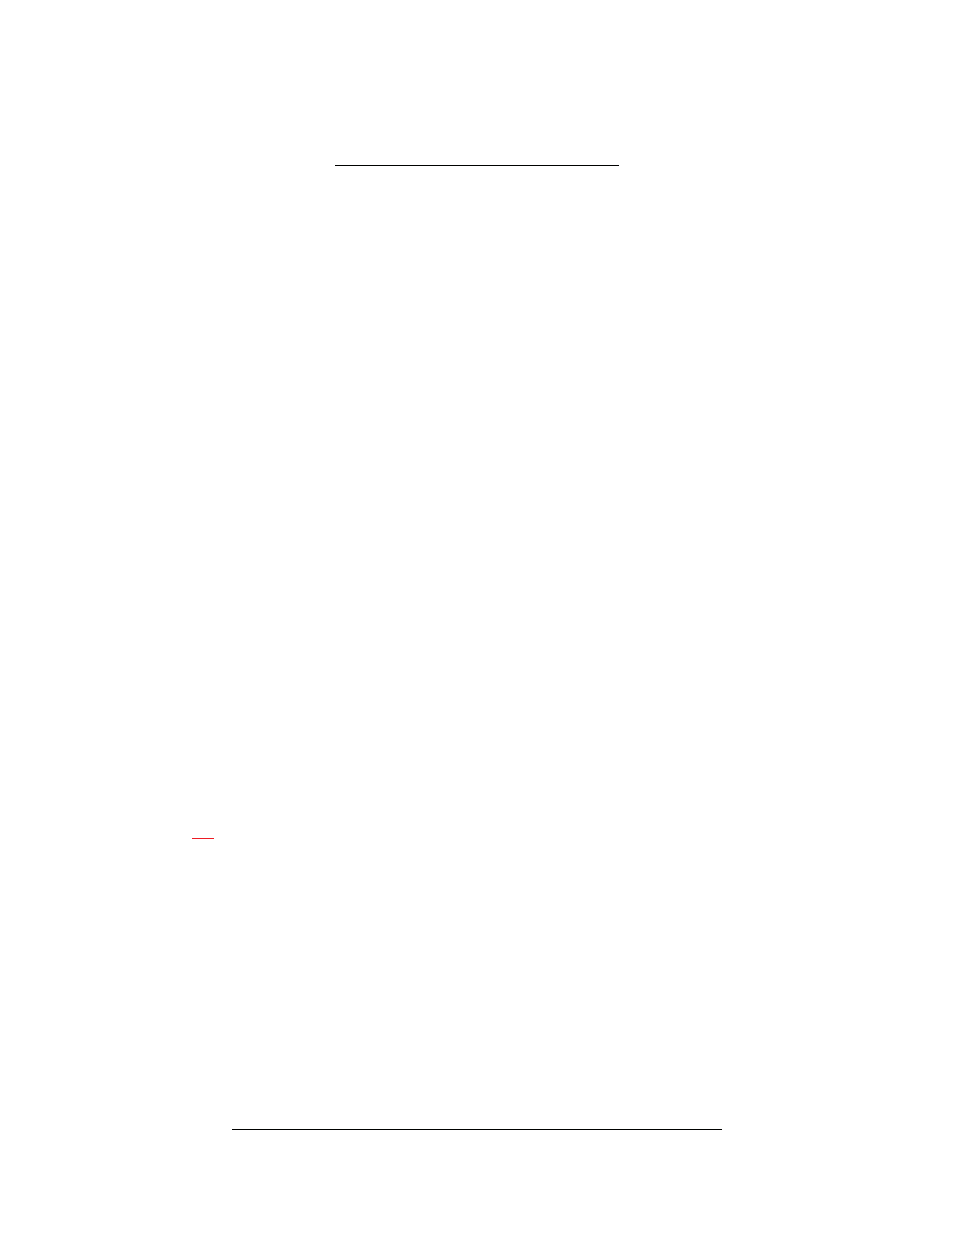 Turbo Action 70600 CHEETAH E-SHIFT Controller User Manual   Page 16 on